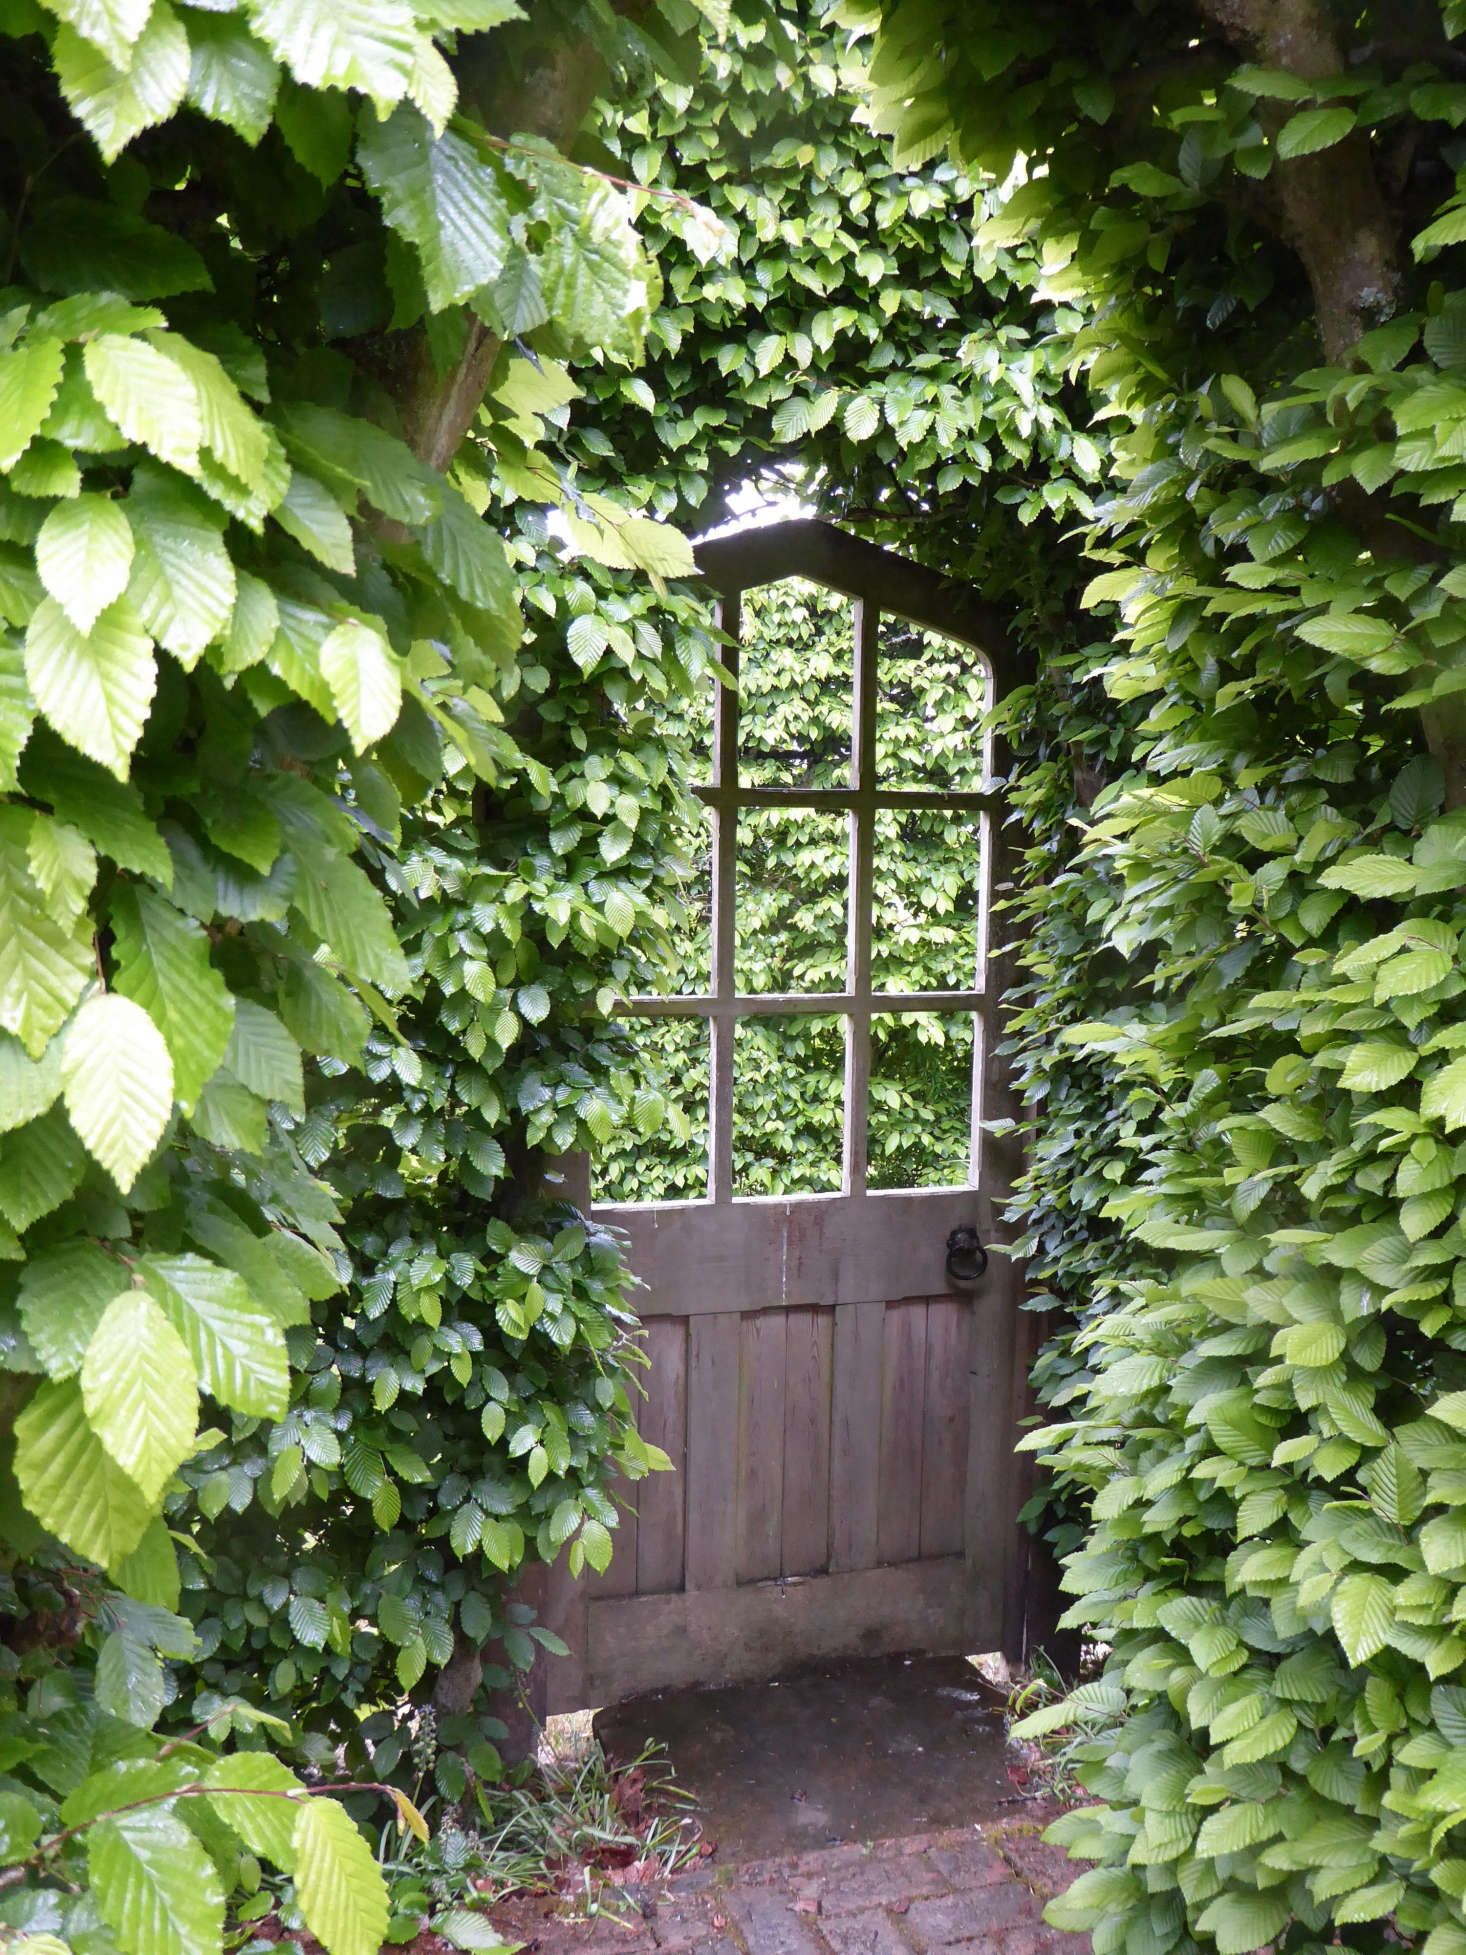 A wooden door in a hornbeam hedge leads to a secluded miniature green garden. Photograph by Clare Coulson.